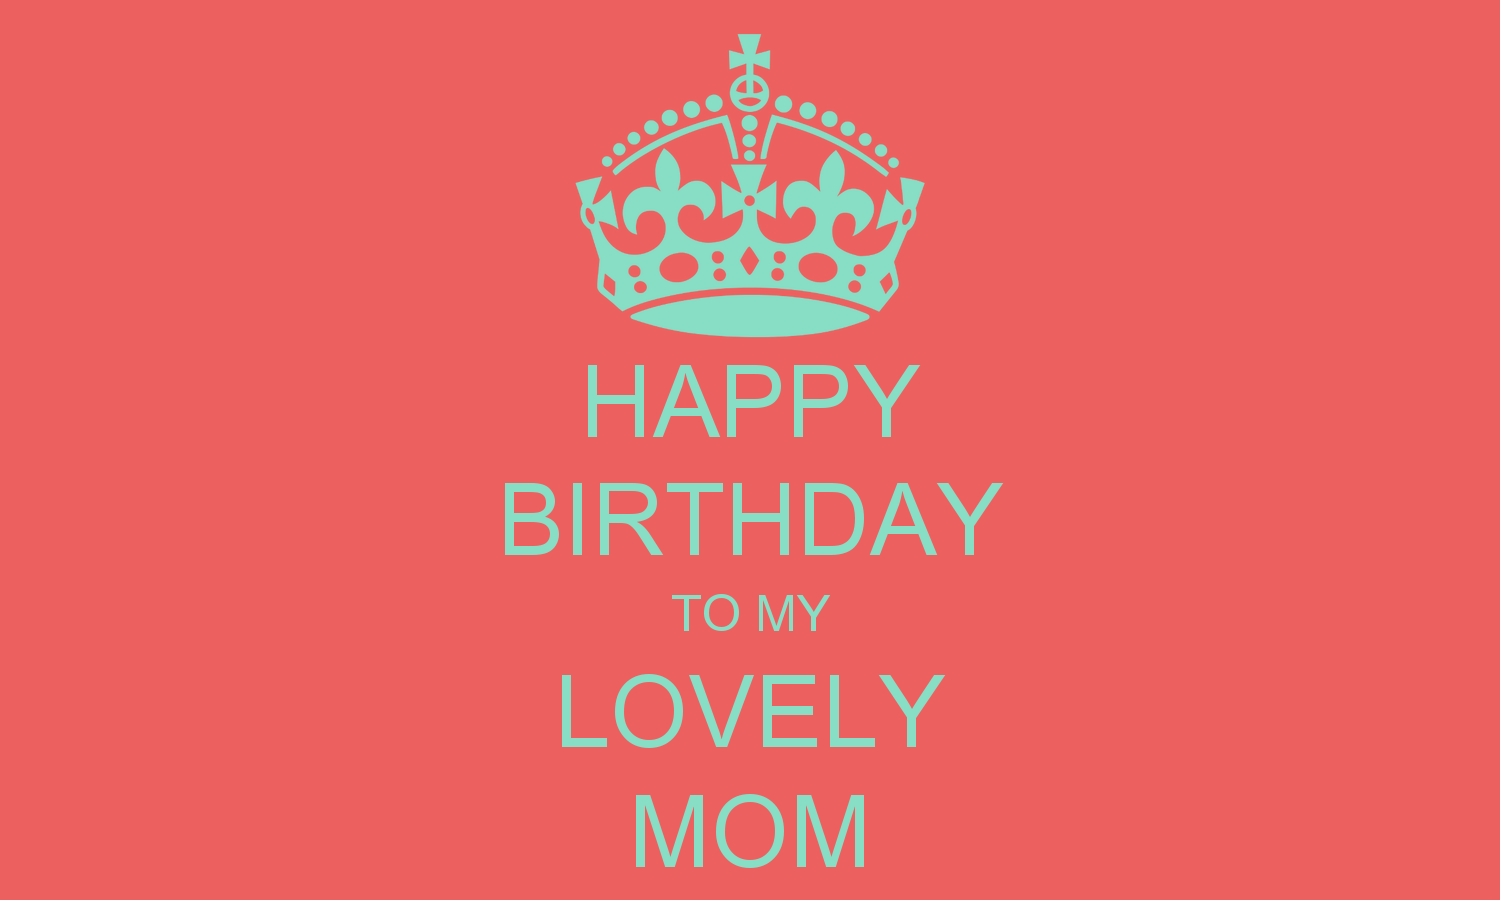 Happy Birthday Mom Cards - ClipArt Best